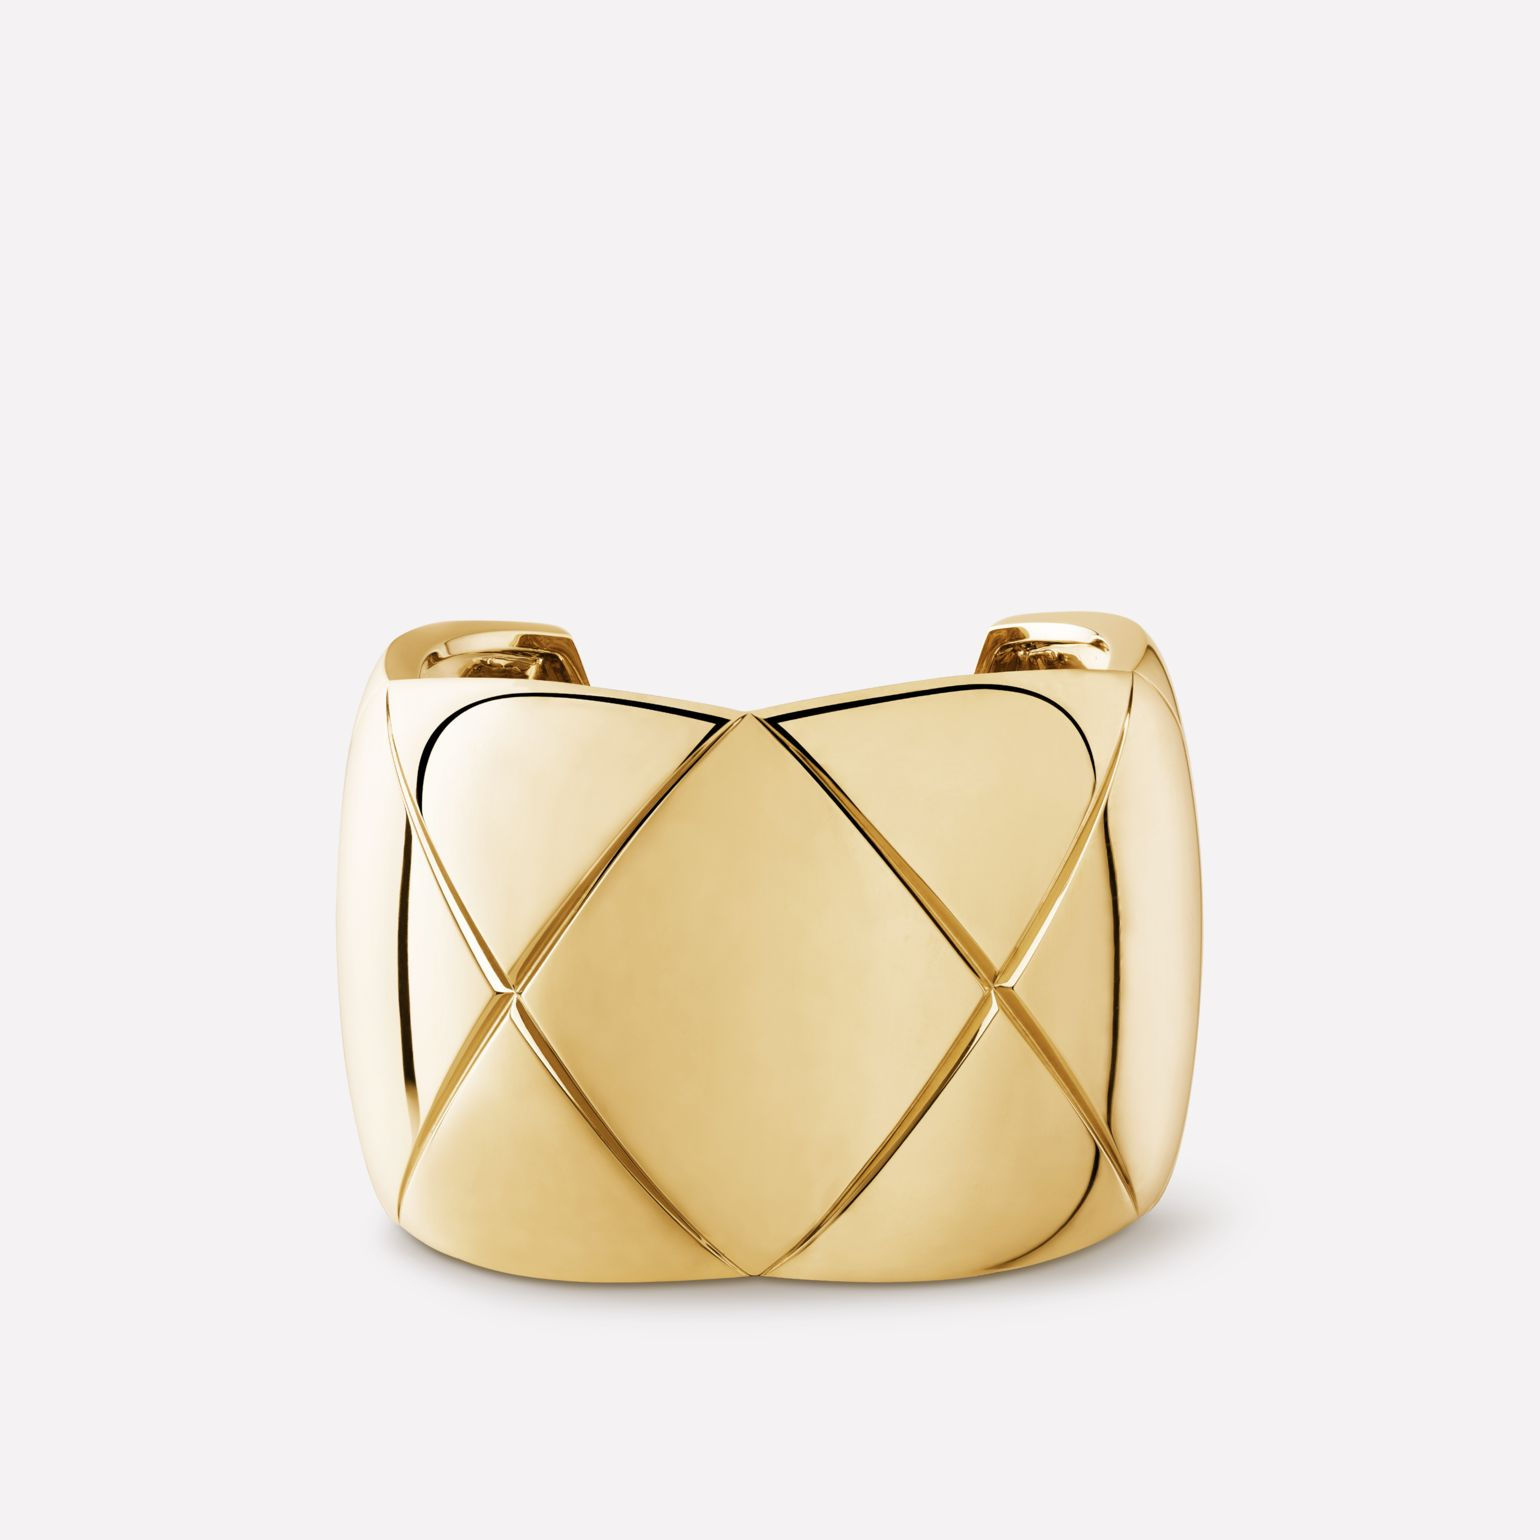 Coco Crush cuff Quilted motif, 18K yellow gold